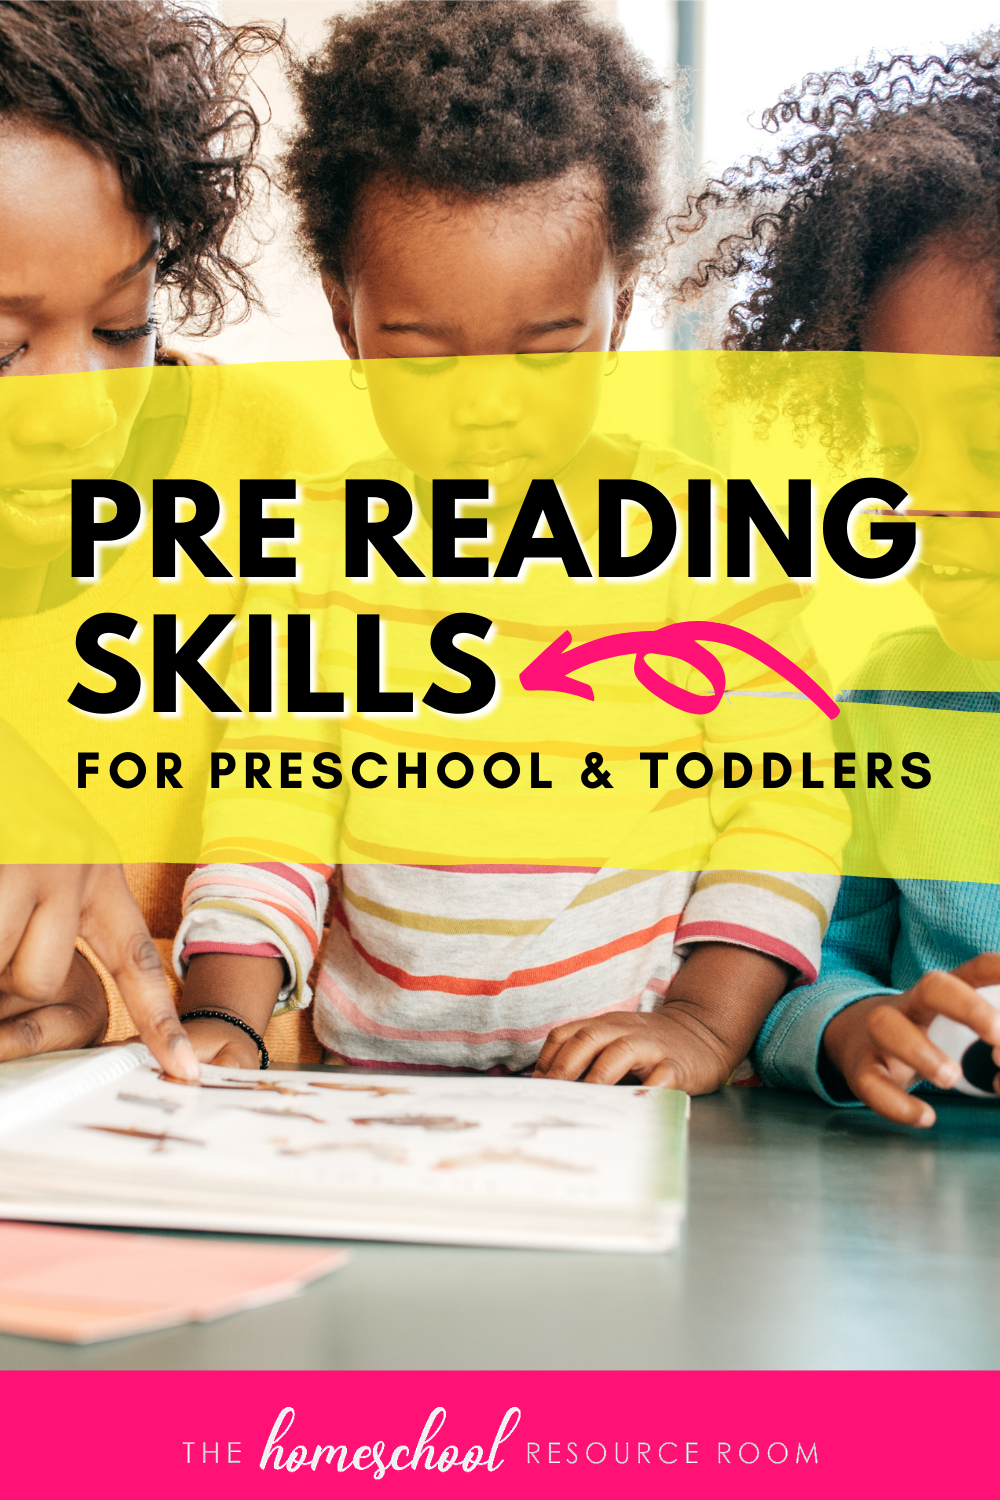 Find out what your child needs to learn pre reading skills like phonological awareness, vocabulary, short term memory, and more.